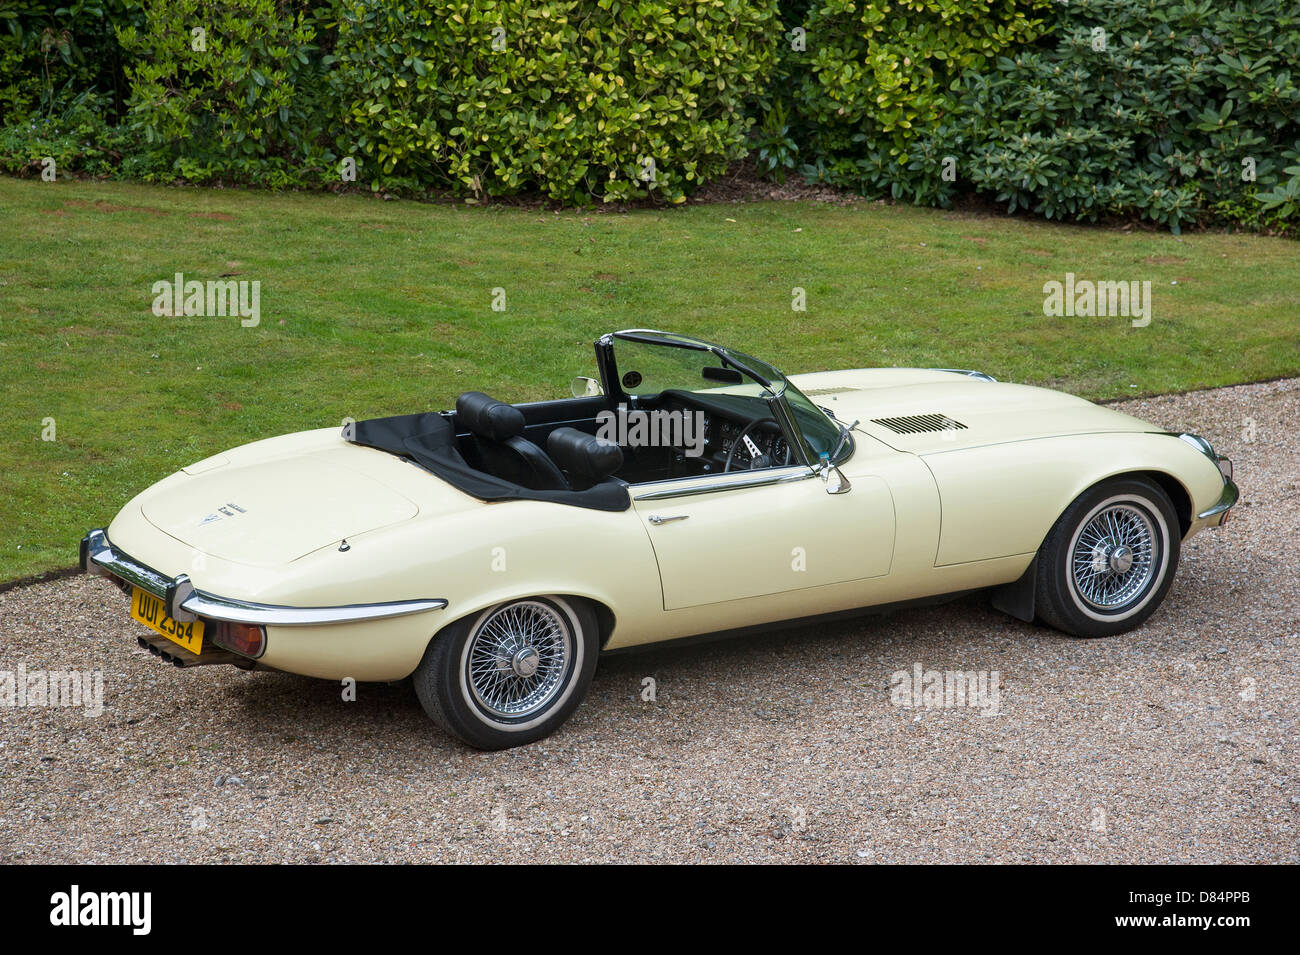 Jaguar V12 High Resolution Stock Photography And Images Alamy